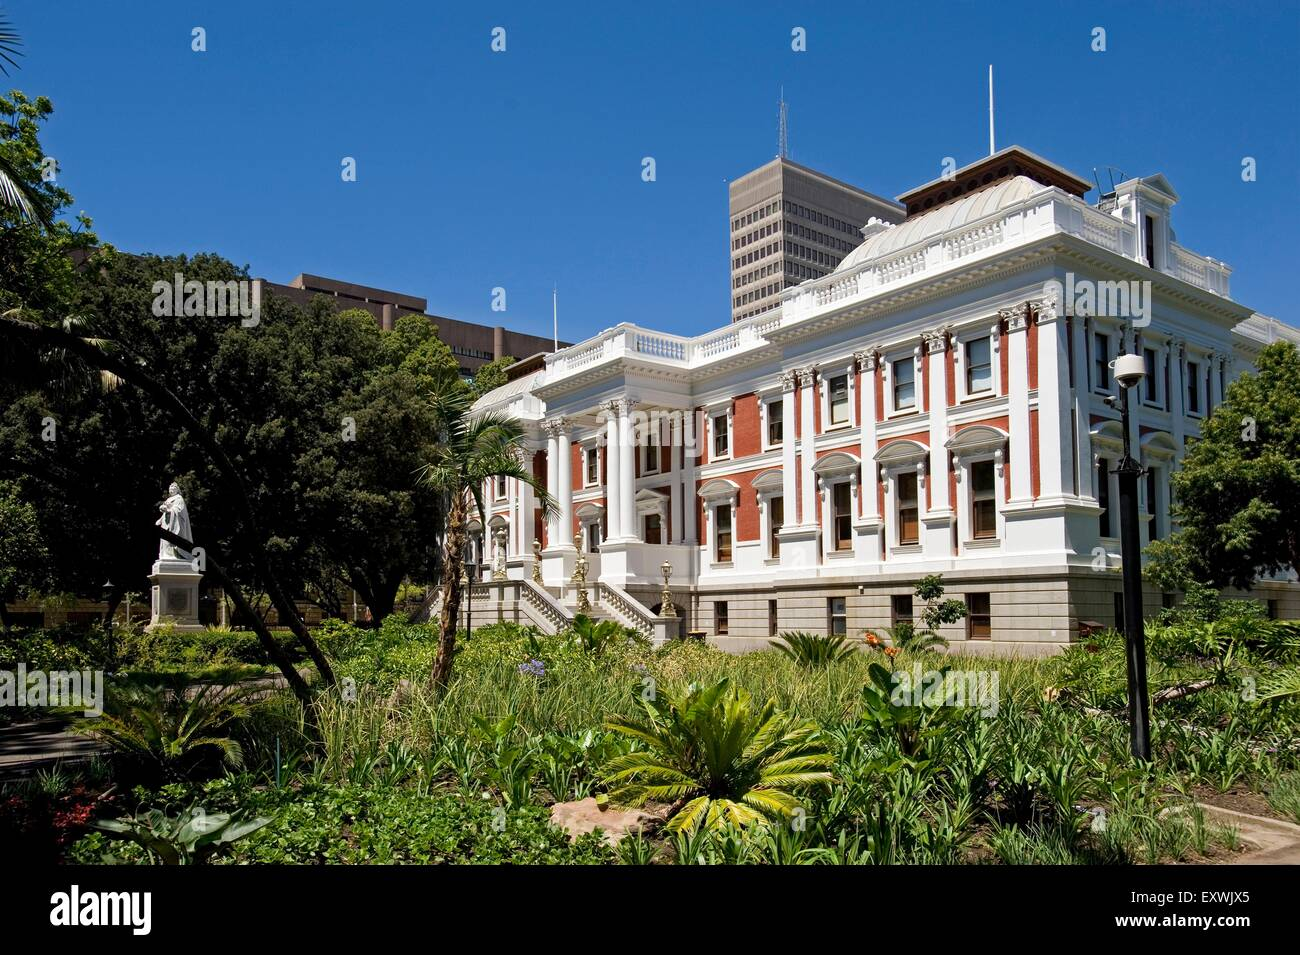 The Company's Garden Parliament building, Cape Town, South Africa - Stock Image